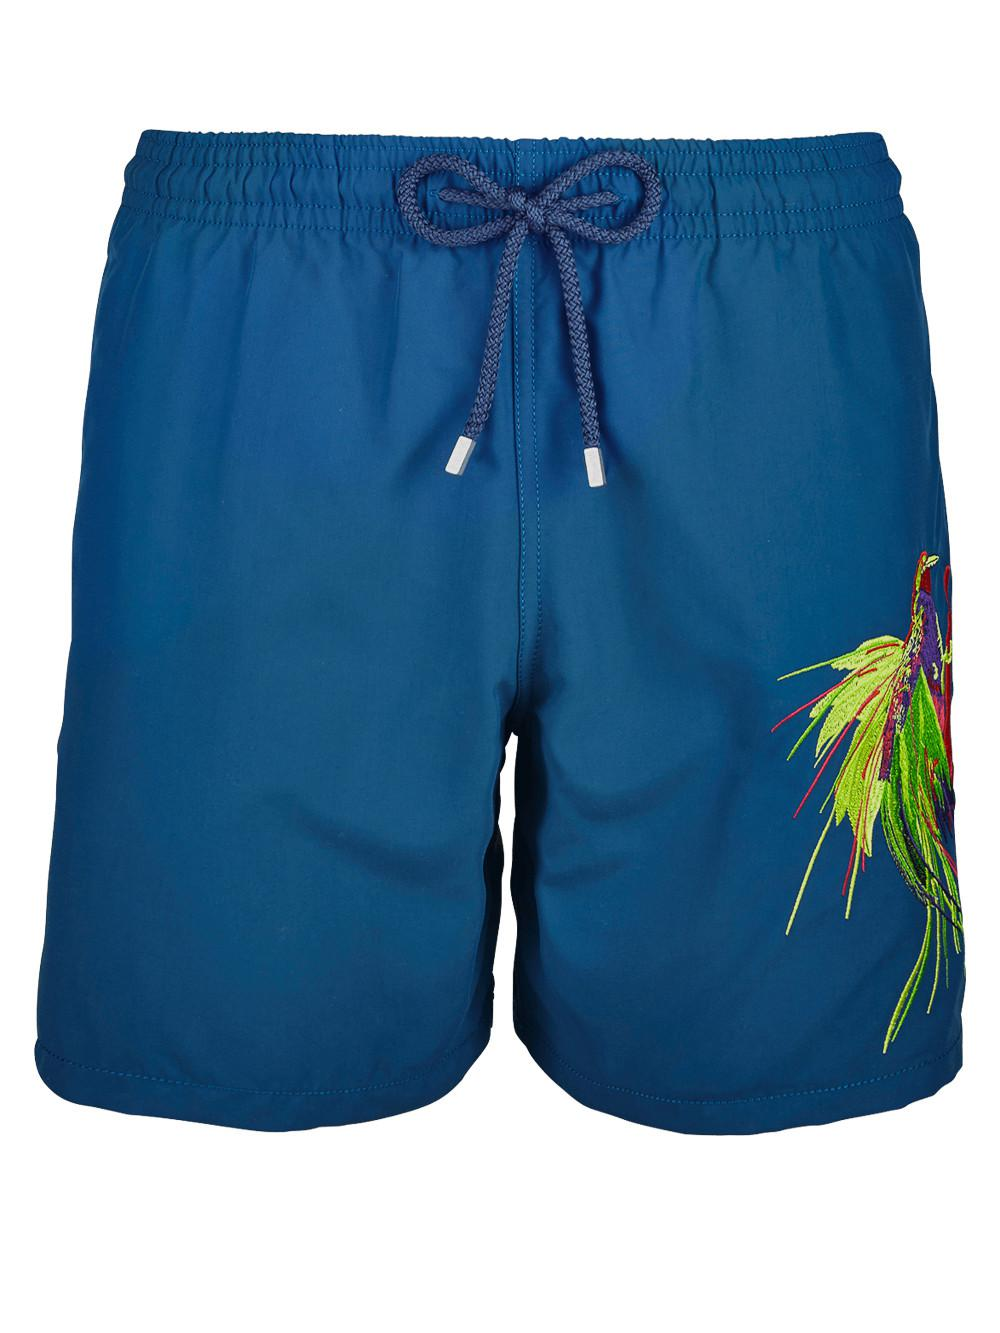 7d3706a622 Lyst - Vilebrequin Motu Swimming Trunk in Blue for Men